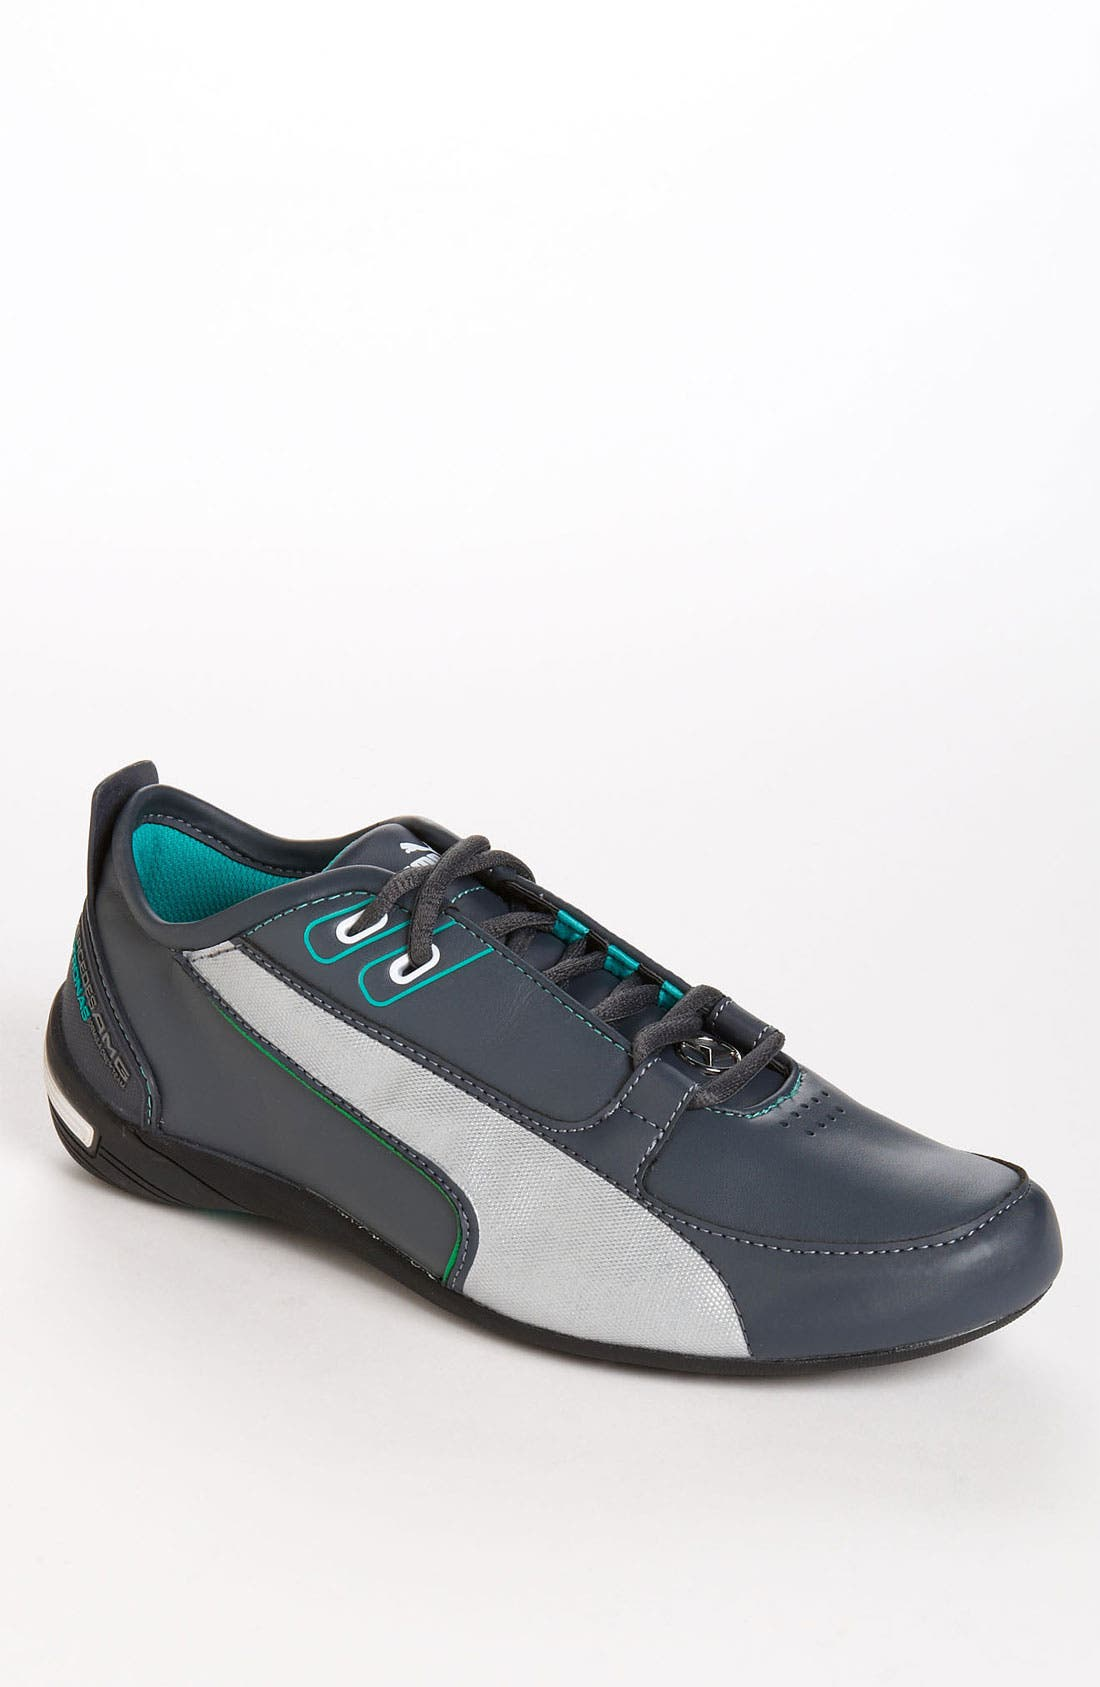 Alternate Image 1 Selected - PUMA 'Mercedes AMG Petronas Grand Cat' Sneaker (Men)